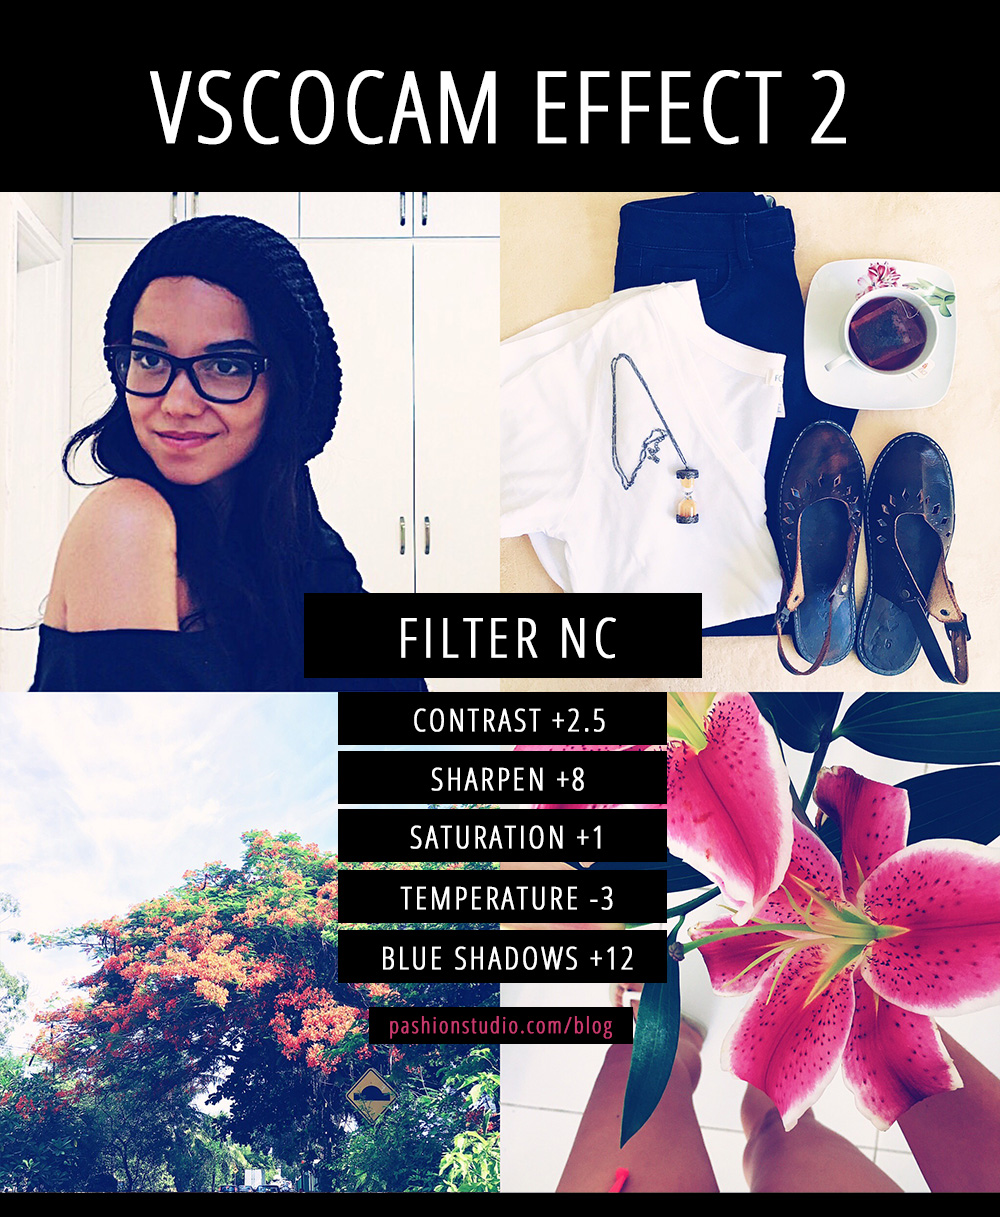 vscocam-filter-effect_NC